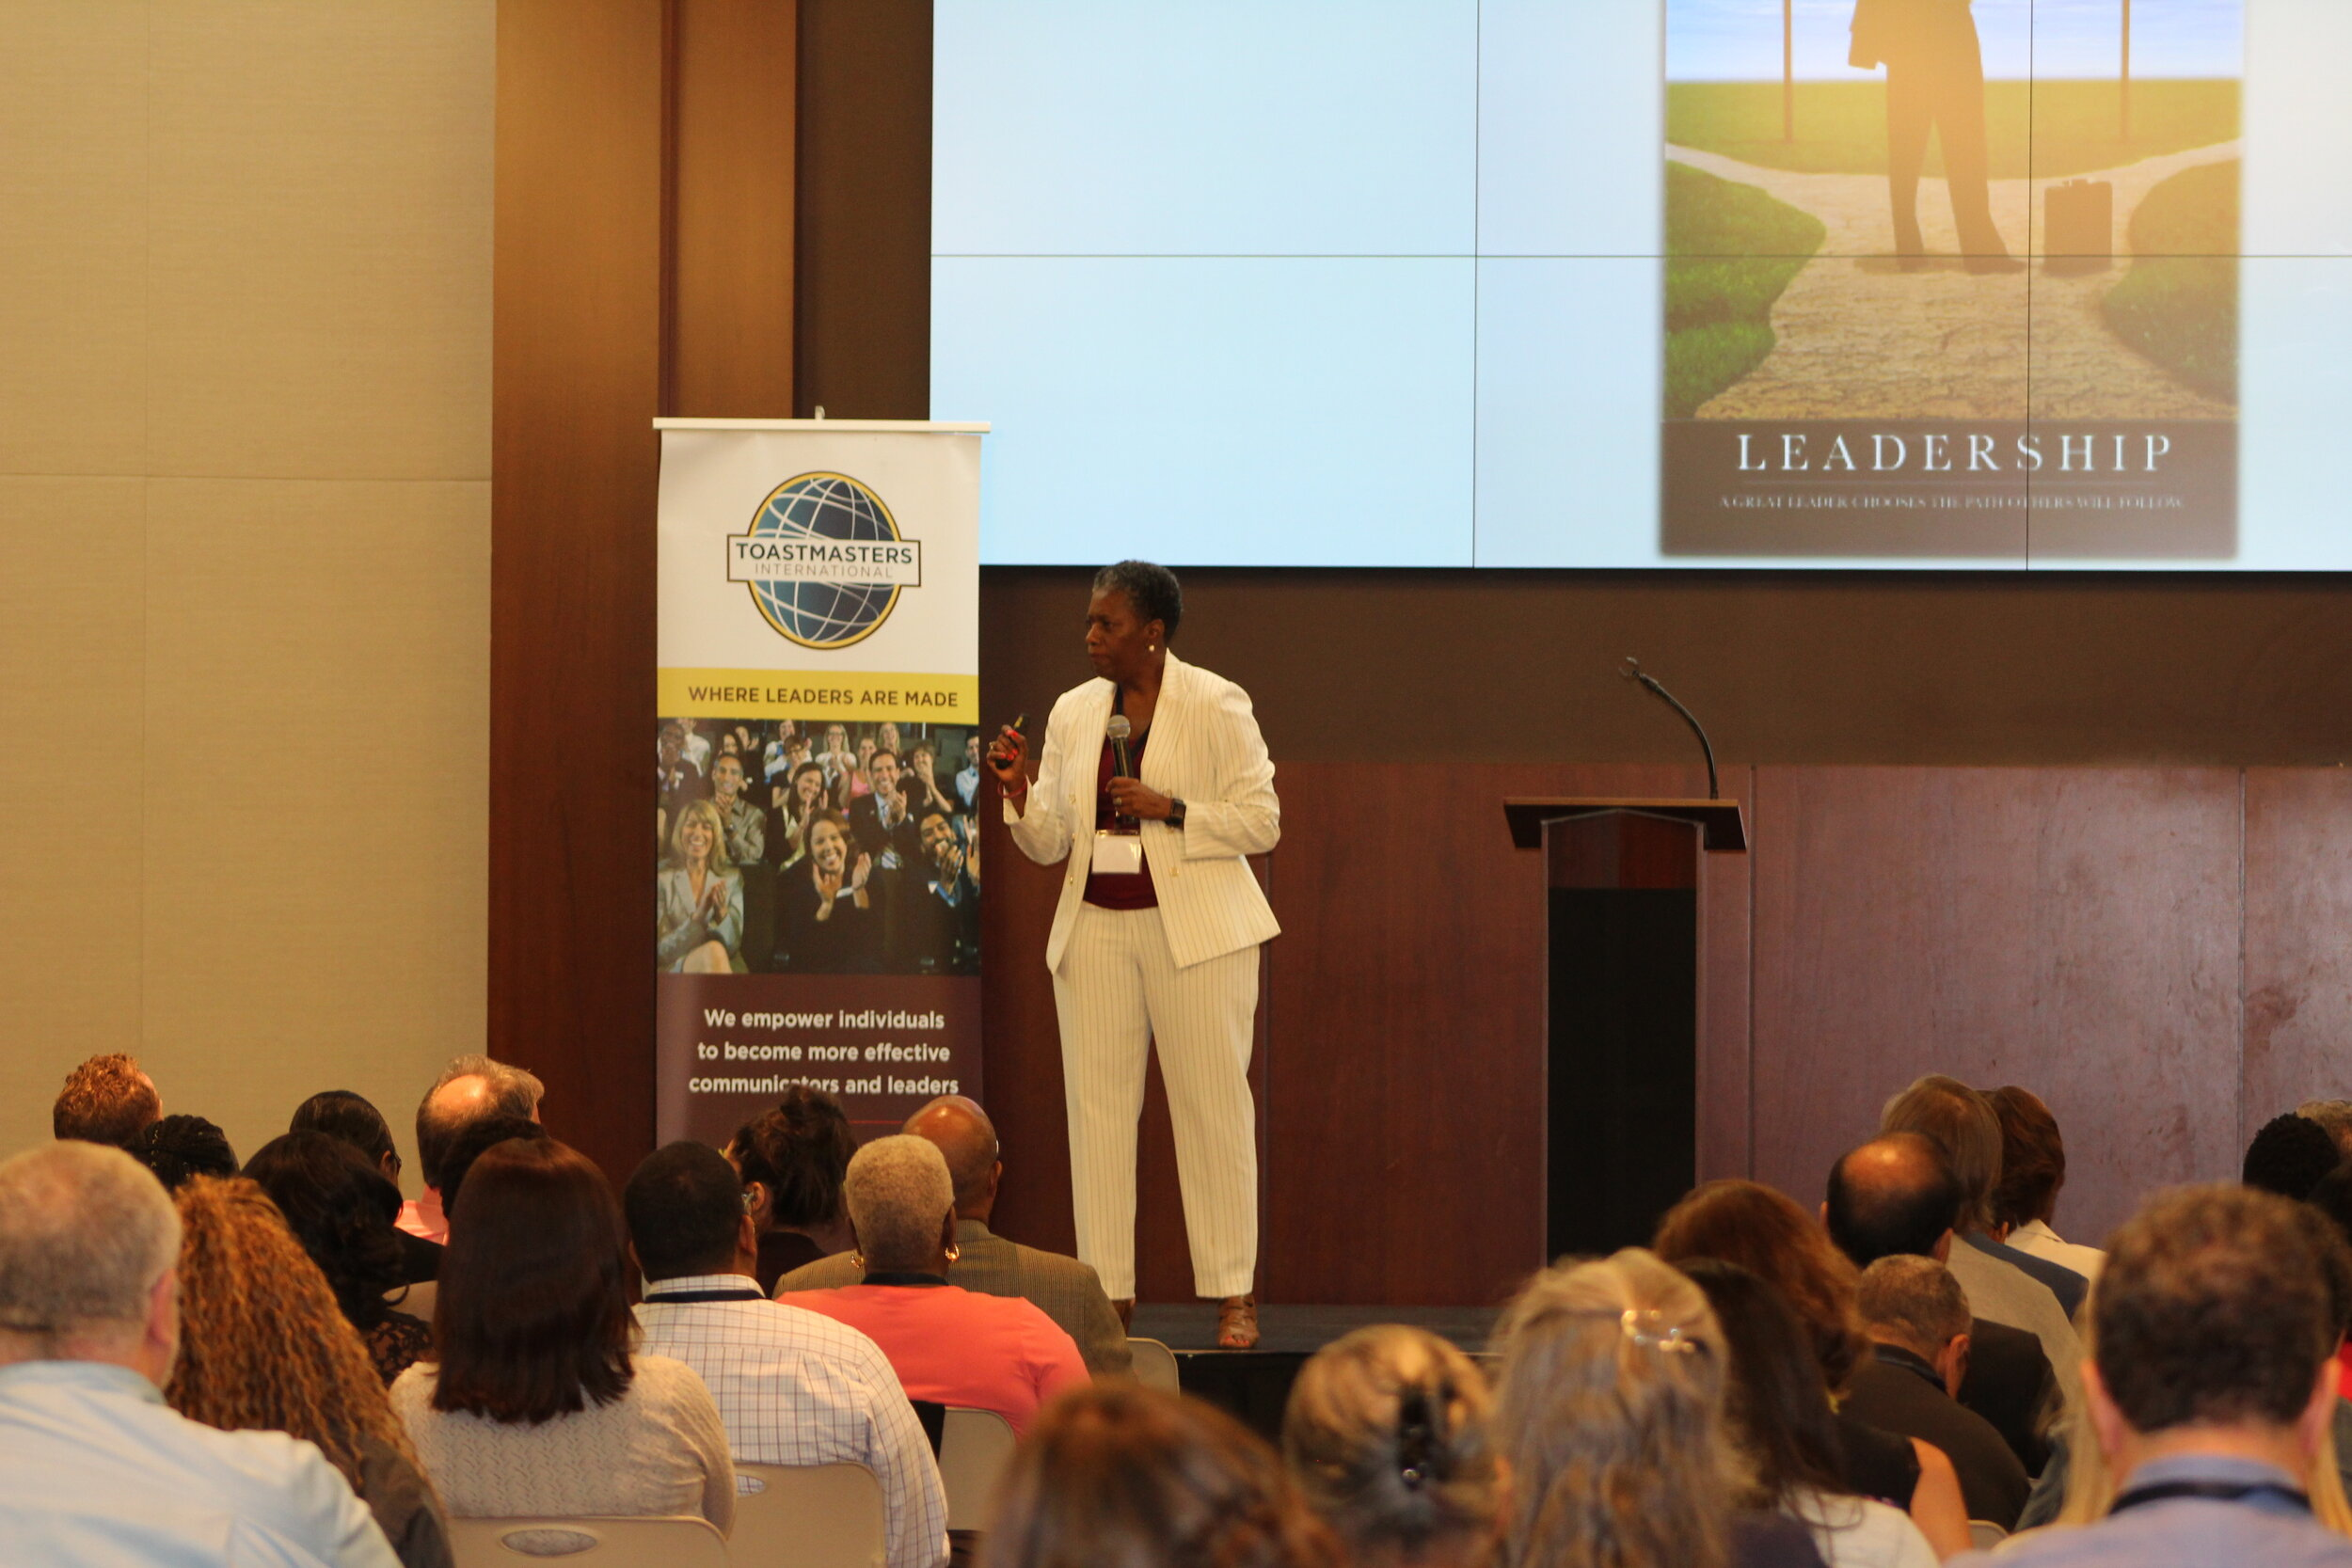 Interested in becoming a member of Speakers Roundtable Toastmasters? - Here's what you need to know